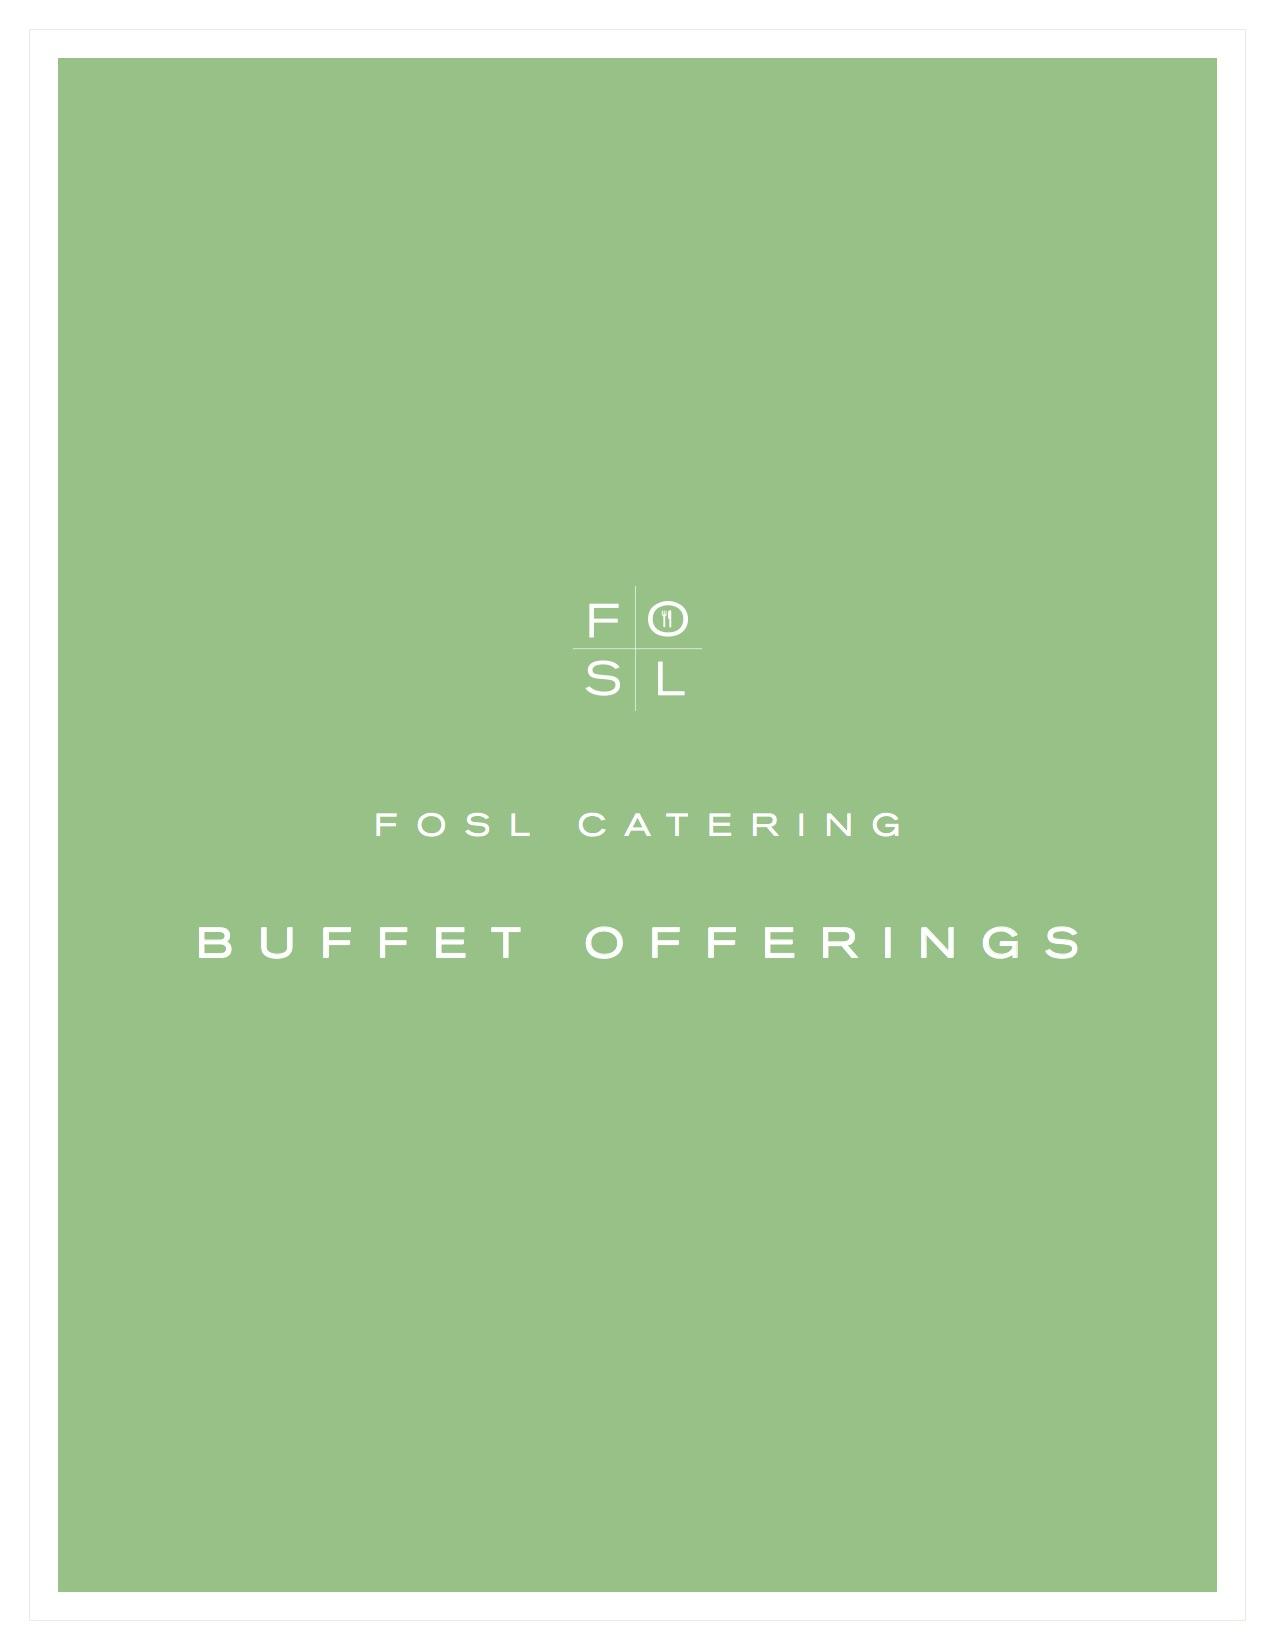 FOSL-Menu-buffet.jpg